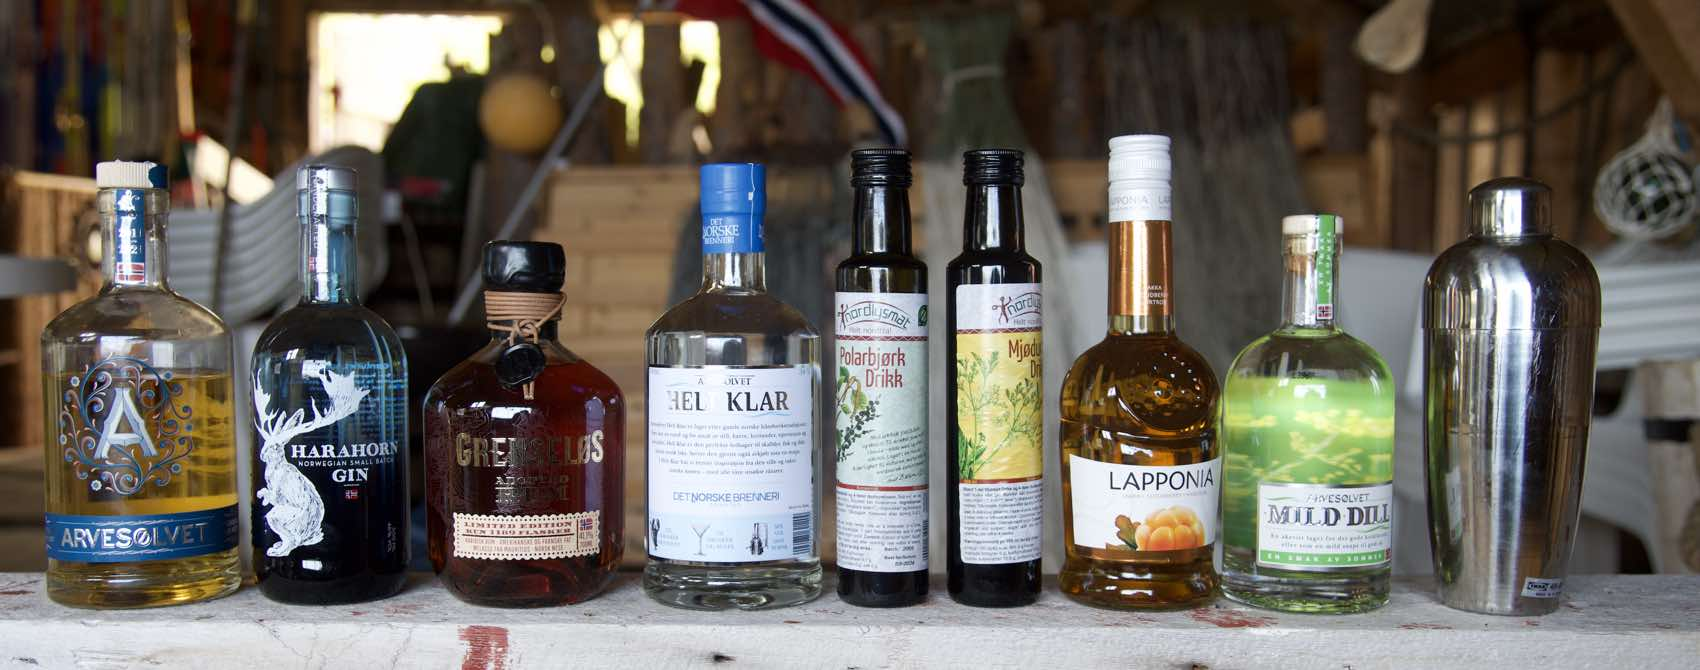 SPIRIT OF NORWAY: Gin, Rum and Aquavit all made in Norway by producer Det Norske Brenneri.